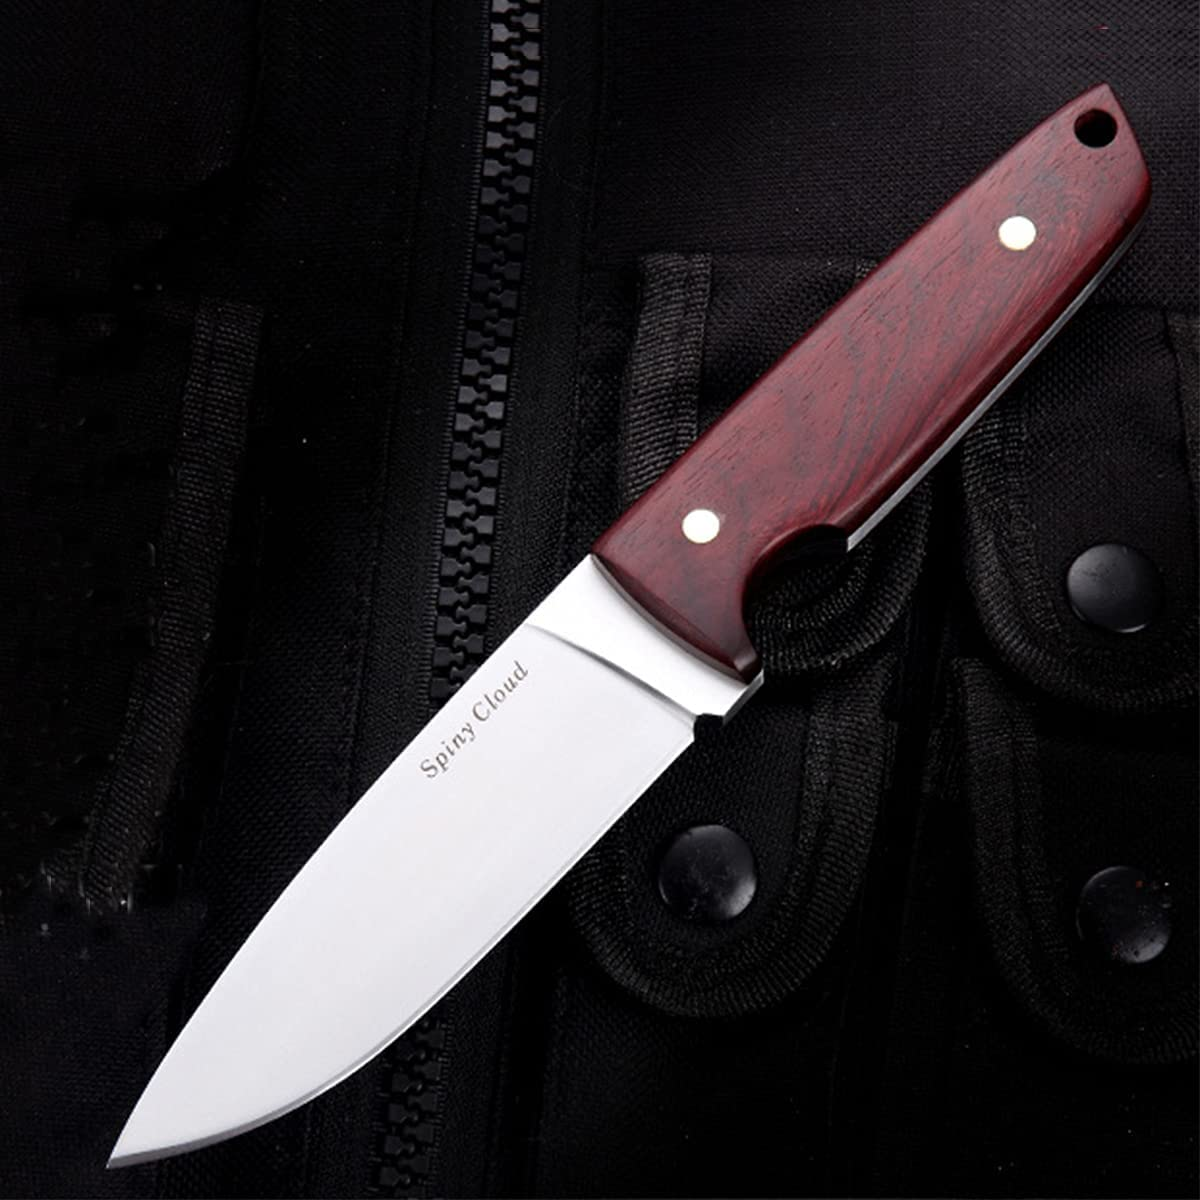 Fixed Blade Hunting Knives with Sheath, 8.5 inch Full Tang Camping Knife with Leather Sheath, Rosewood Handle for Camping, Bushcraft, Tactical, Fishing, Survival